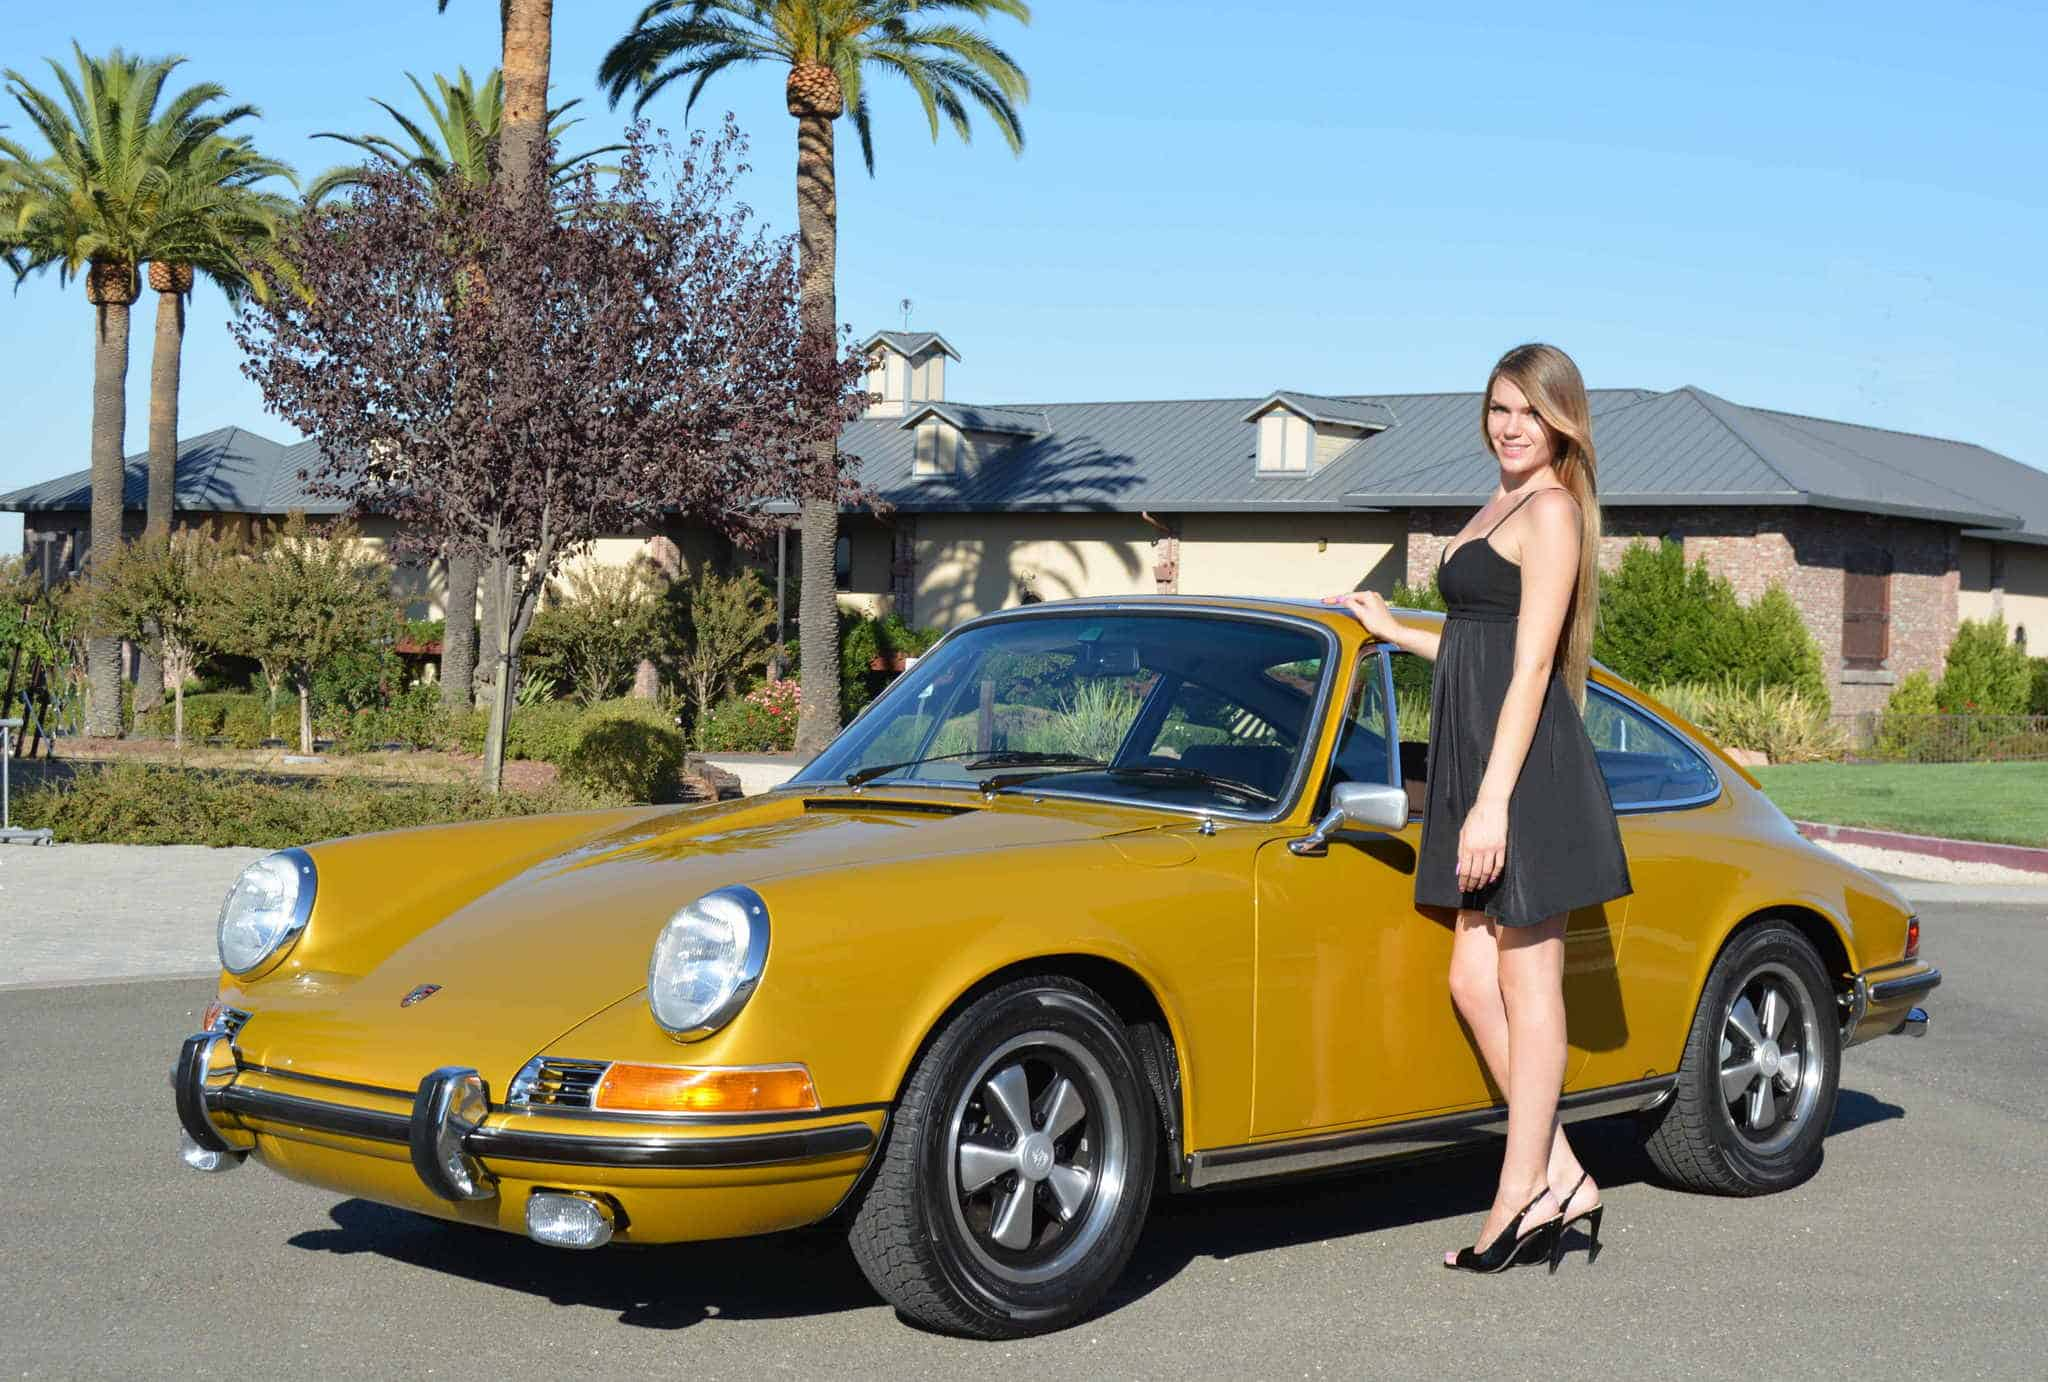 1972 Porsche 911e Sunroof Coupe For Sale Contact Dusty Cars